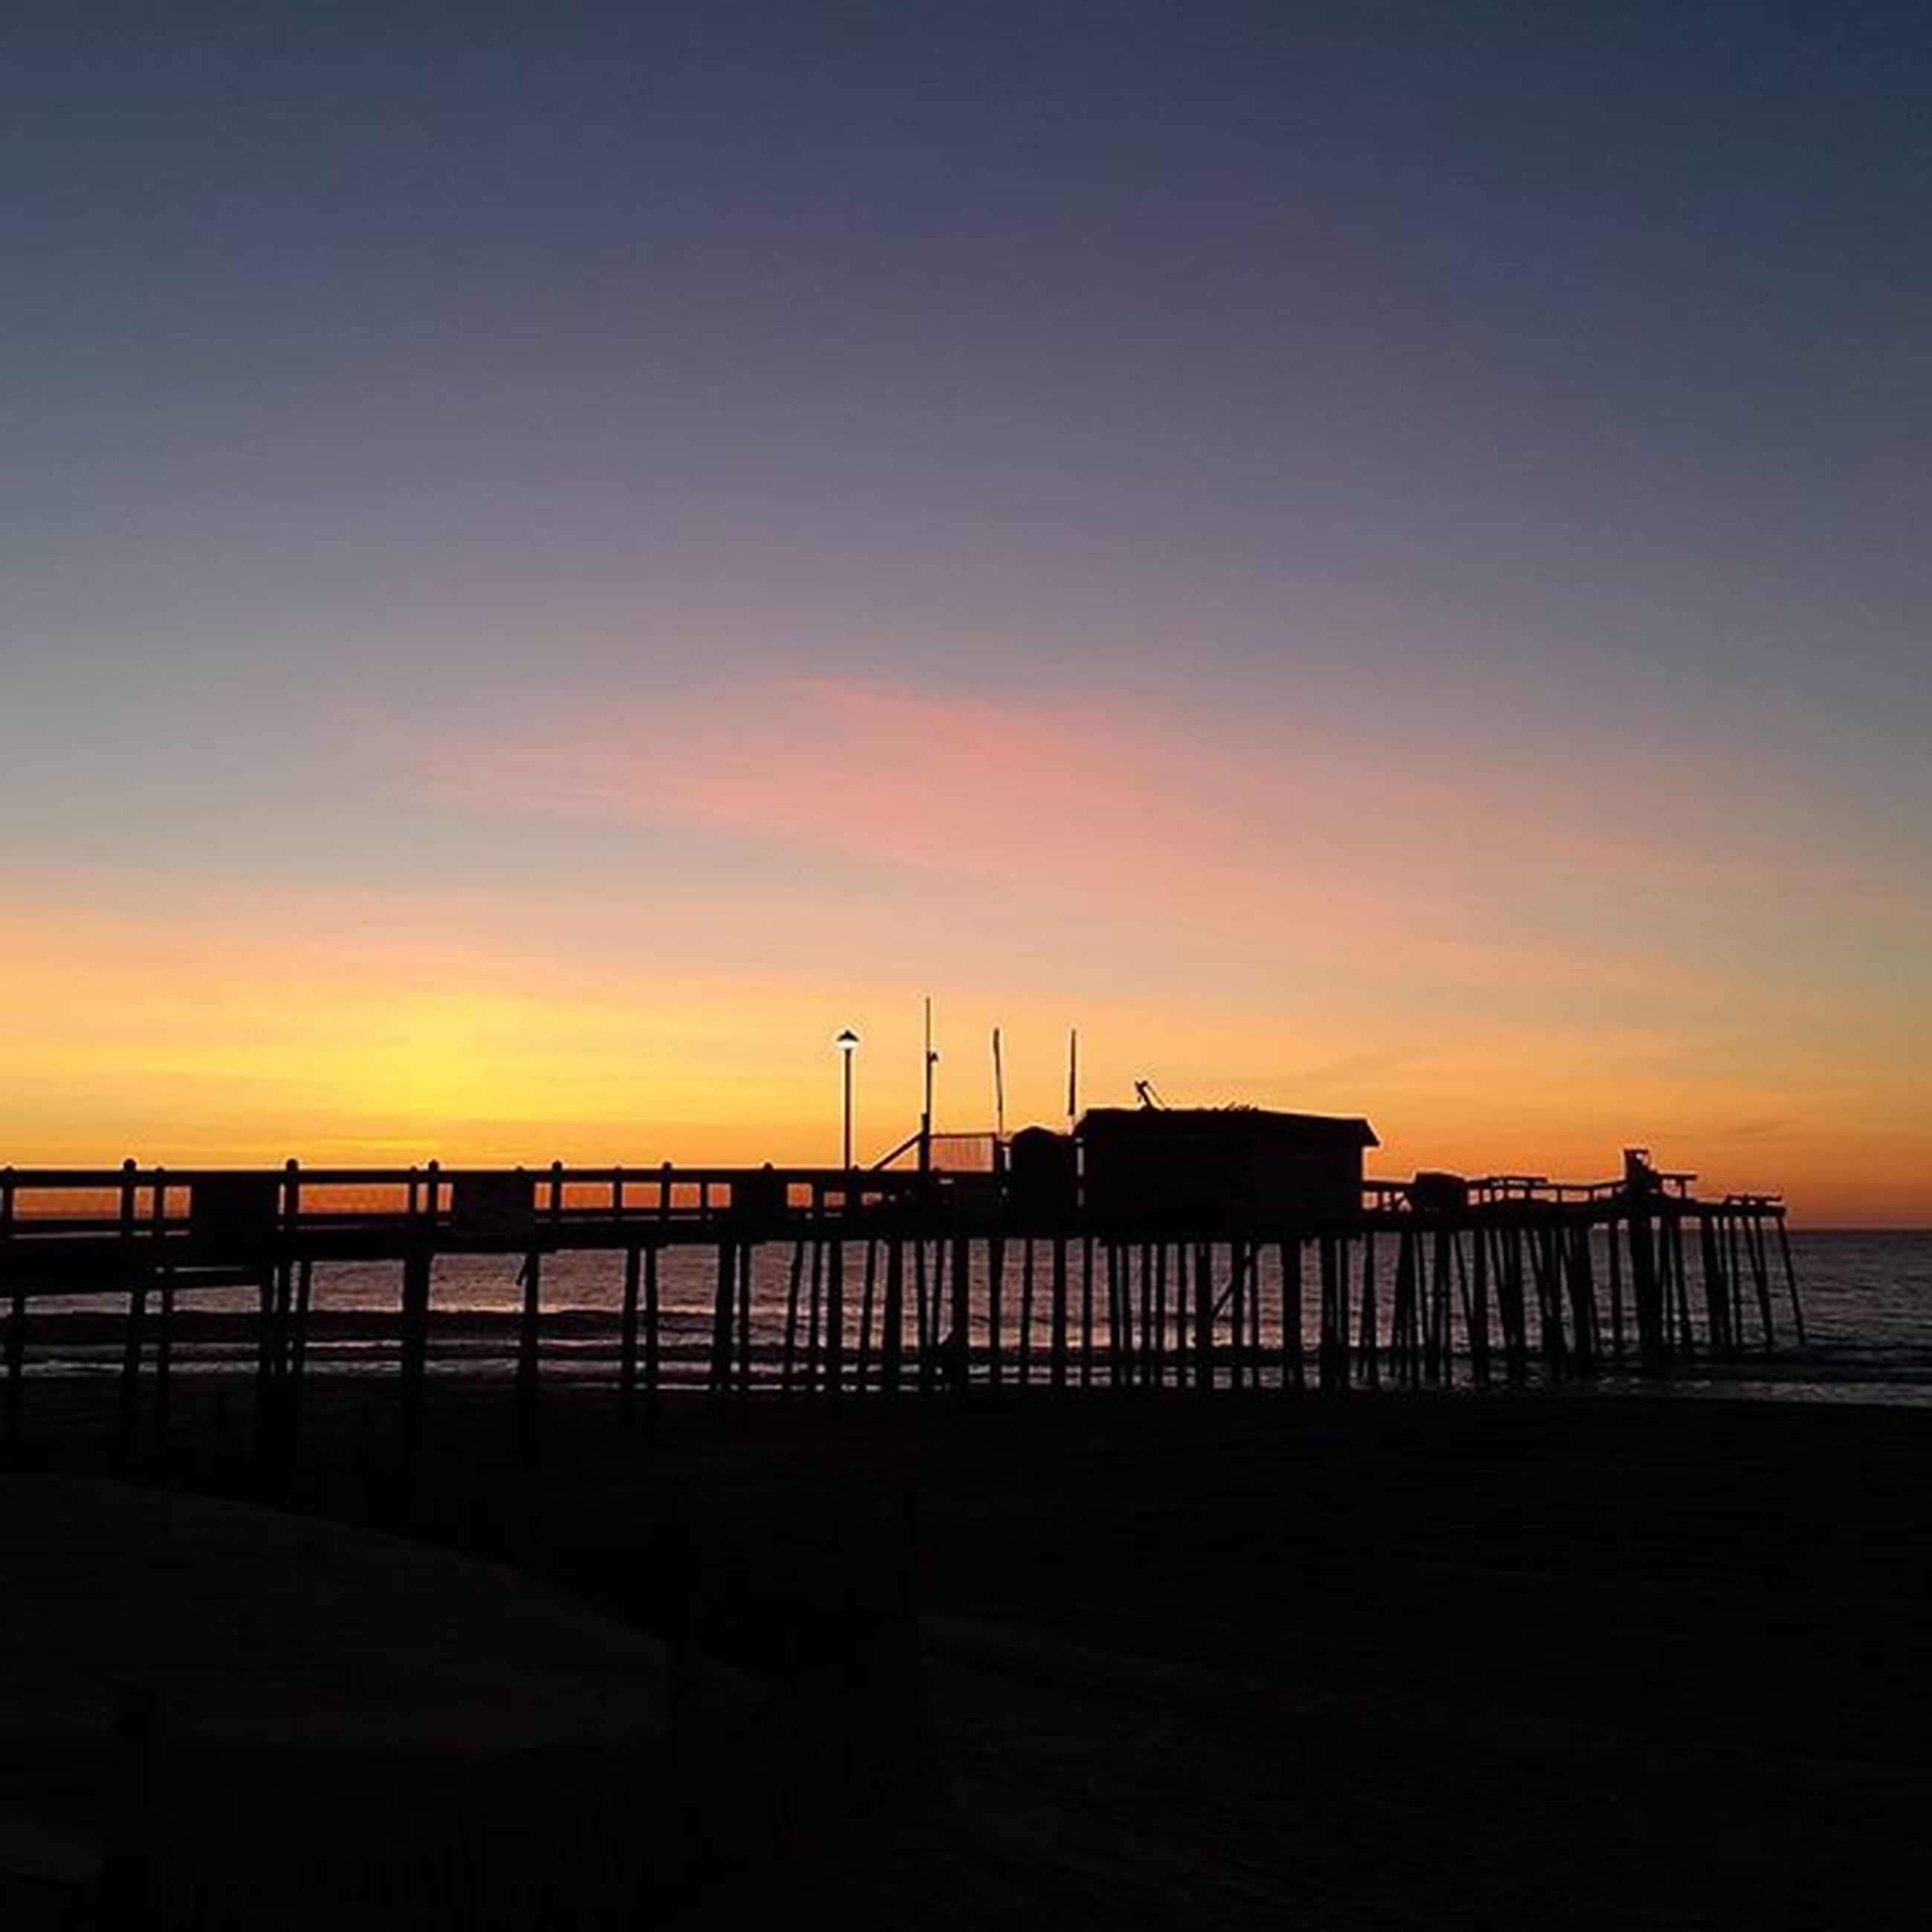 sunset, sea, water, orange color, silhouette, pier, built structure, sky, copy space, architecture, scenics, tranquility, beauty in nature, tranquil scene, dusk, transportation, nature, nautical vessel, horizon over water, beach